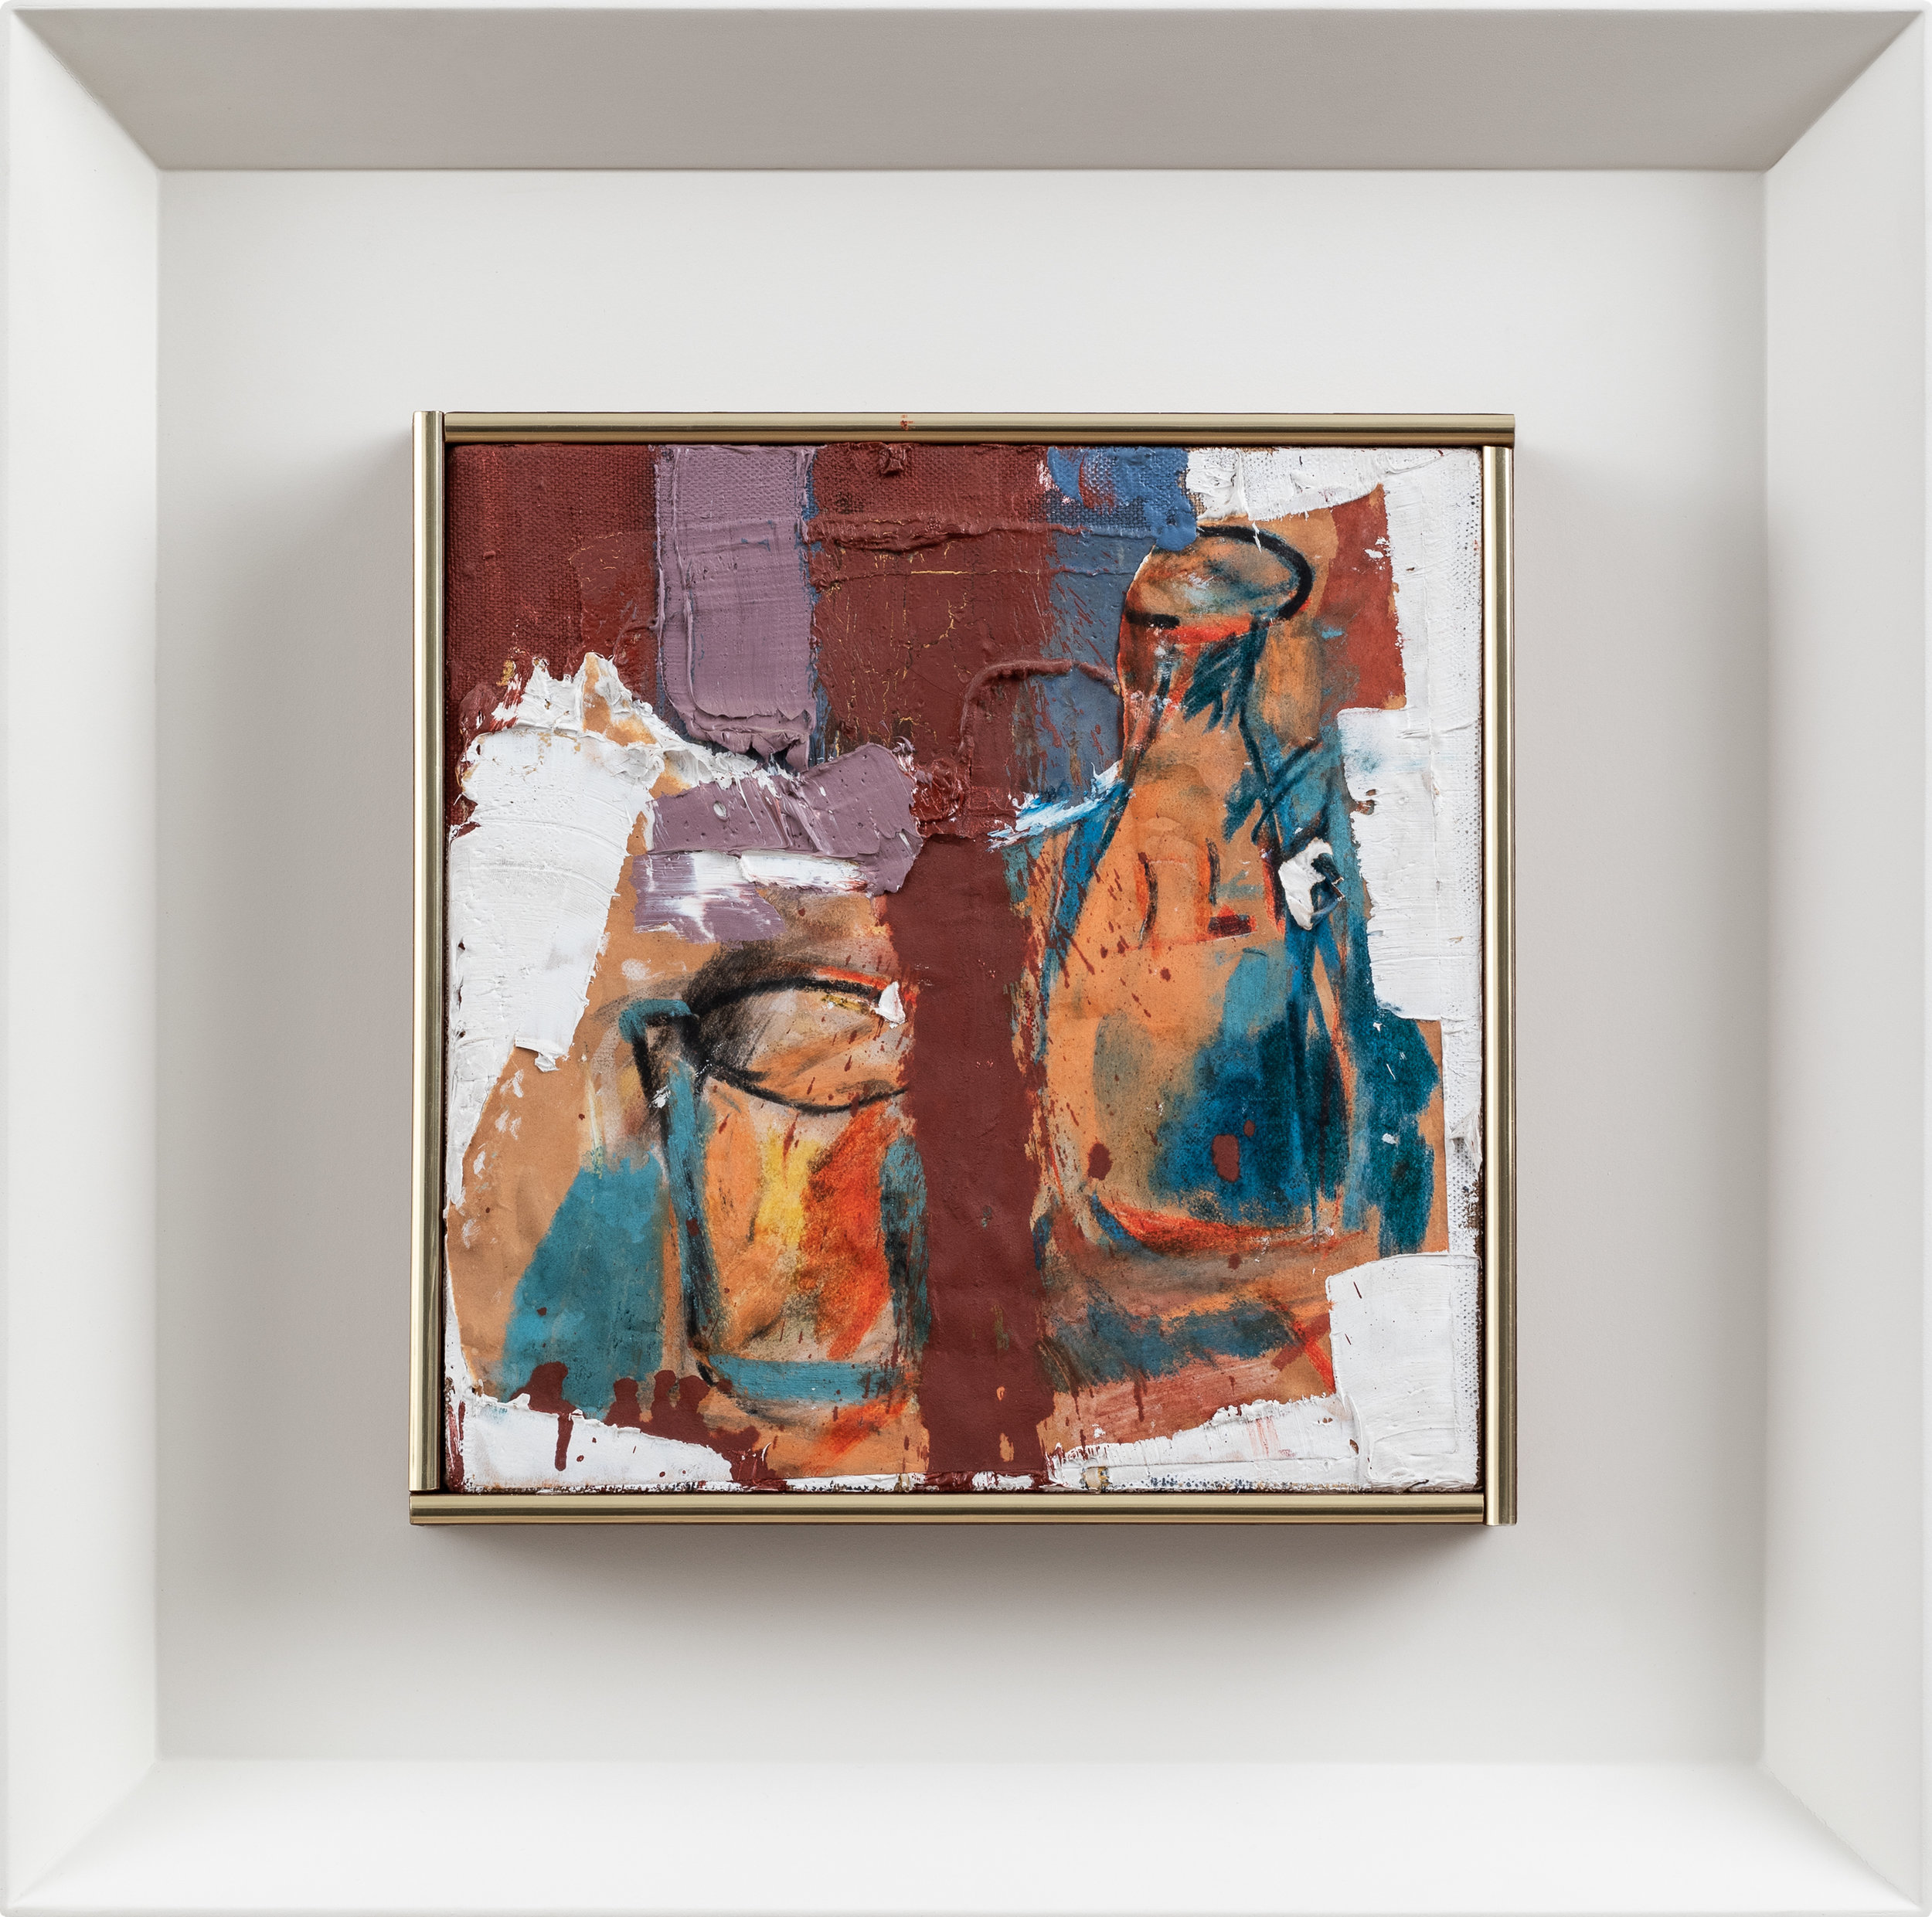 SOLD  Bottle and Glass,   Oil and paper collage on canvas, 1963, 10 x 10 inches